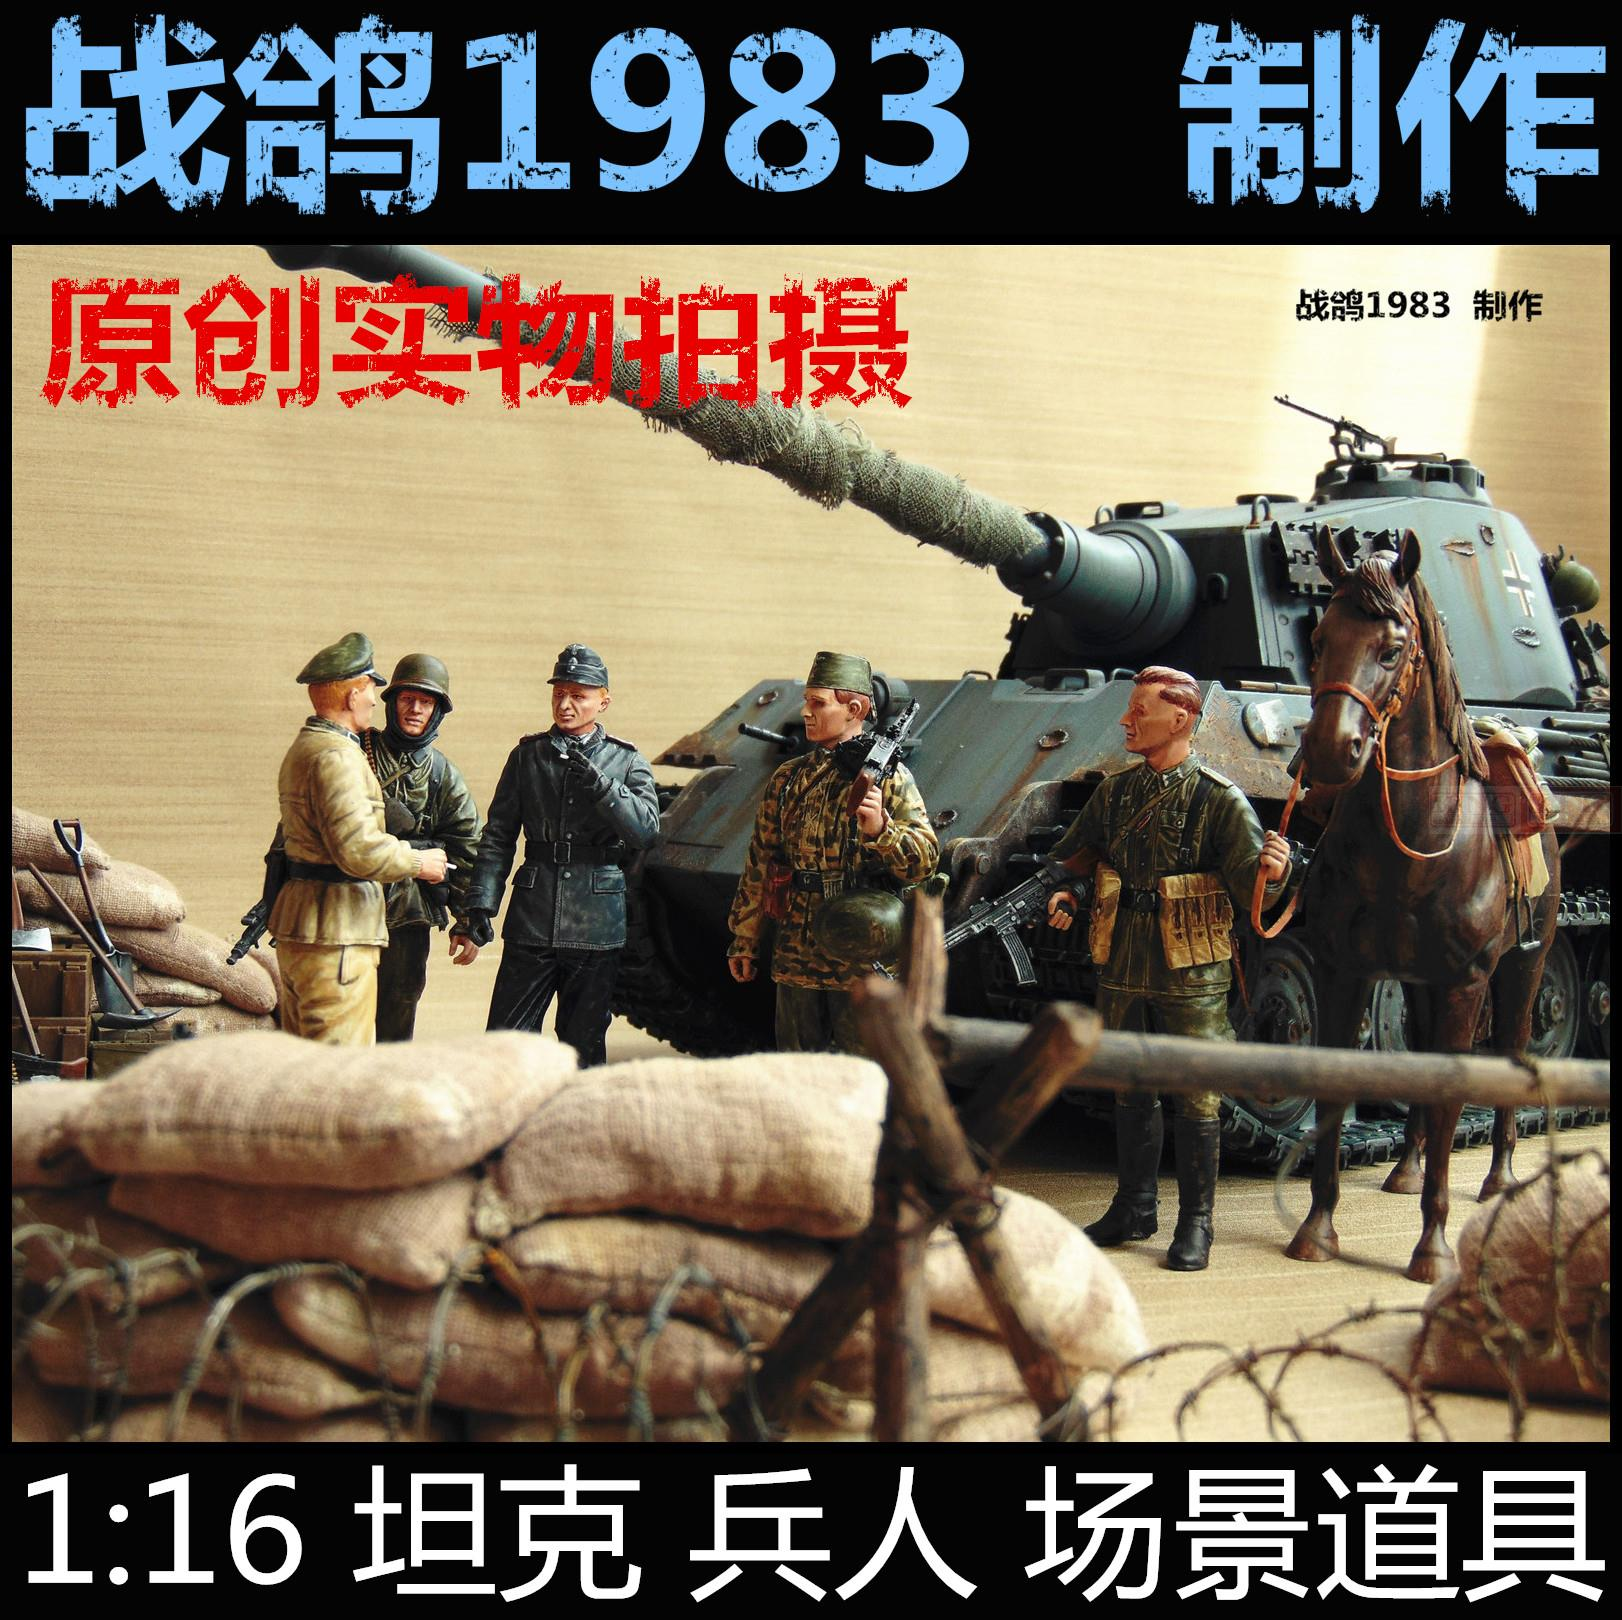 KNL HOBBY 1/16 Tank Soldier Barbed firearms sandbag bunkers and other scenes scene drums wooden props knl hobby voyager model pe35866 modern us military mim 104c patriot 1 launch platform basic transformation pieces